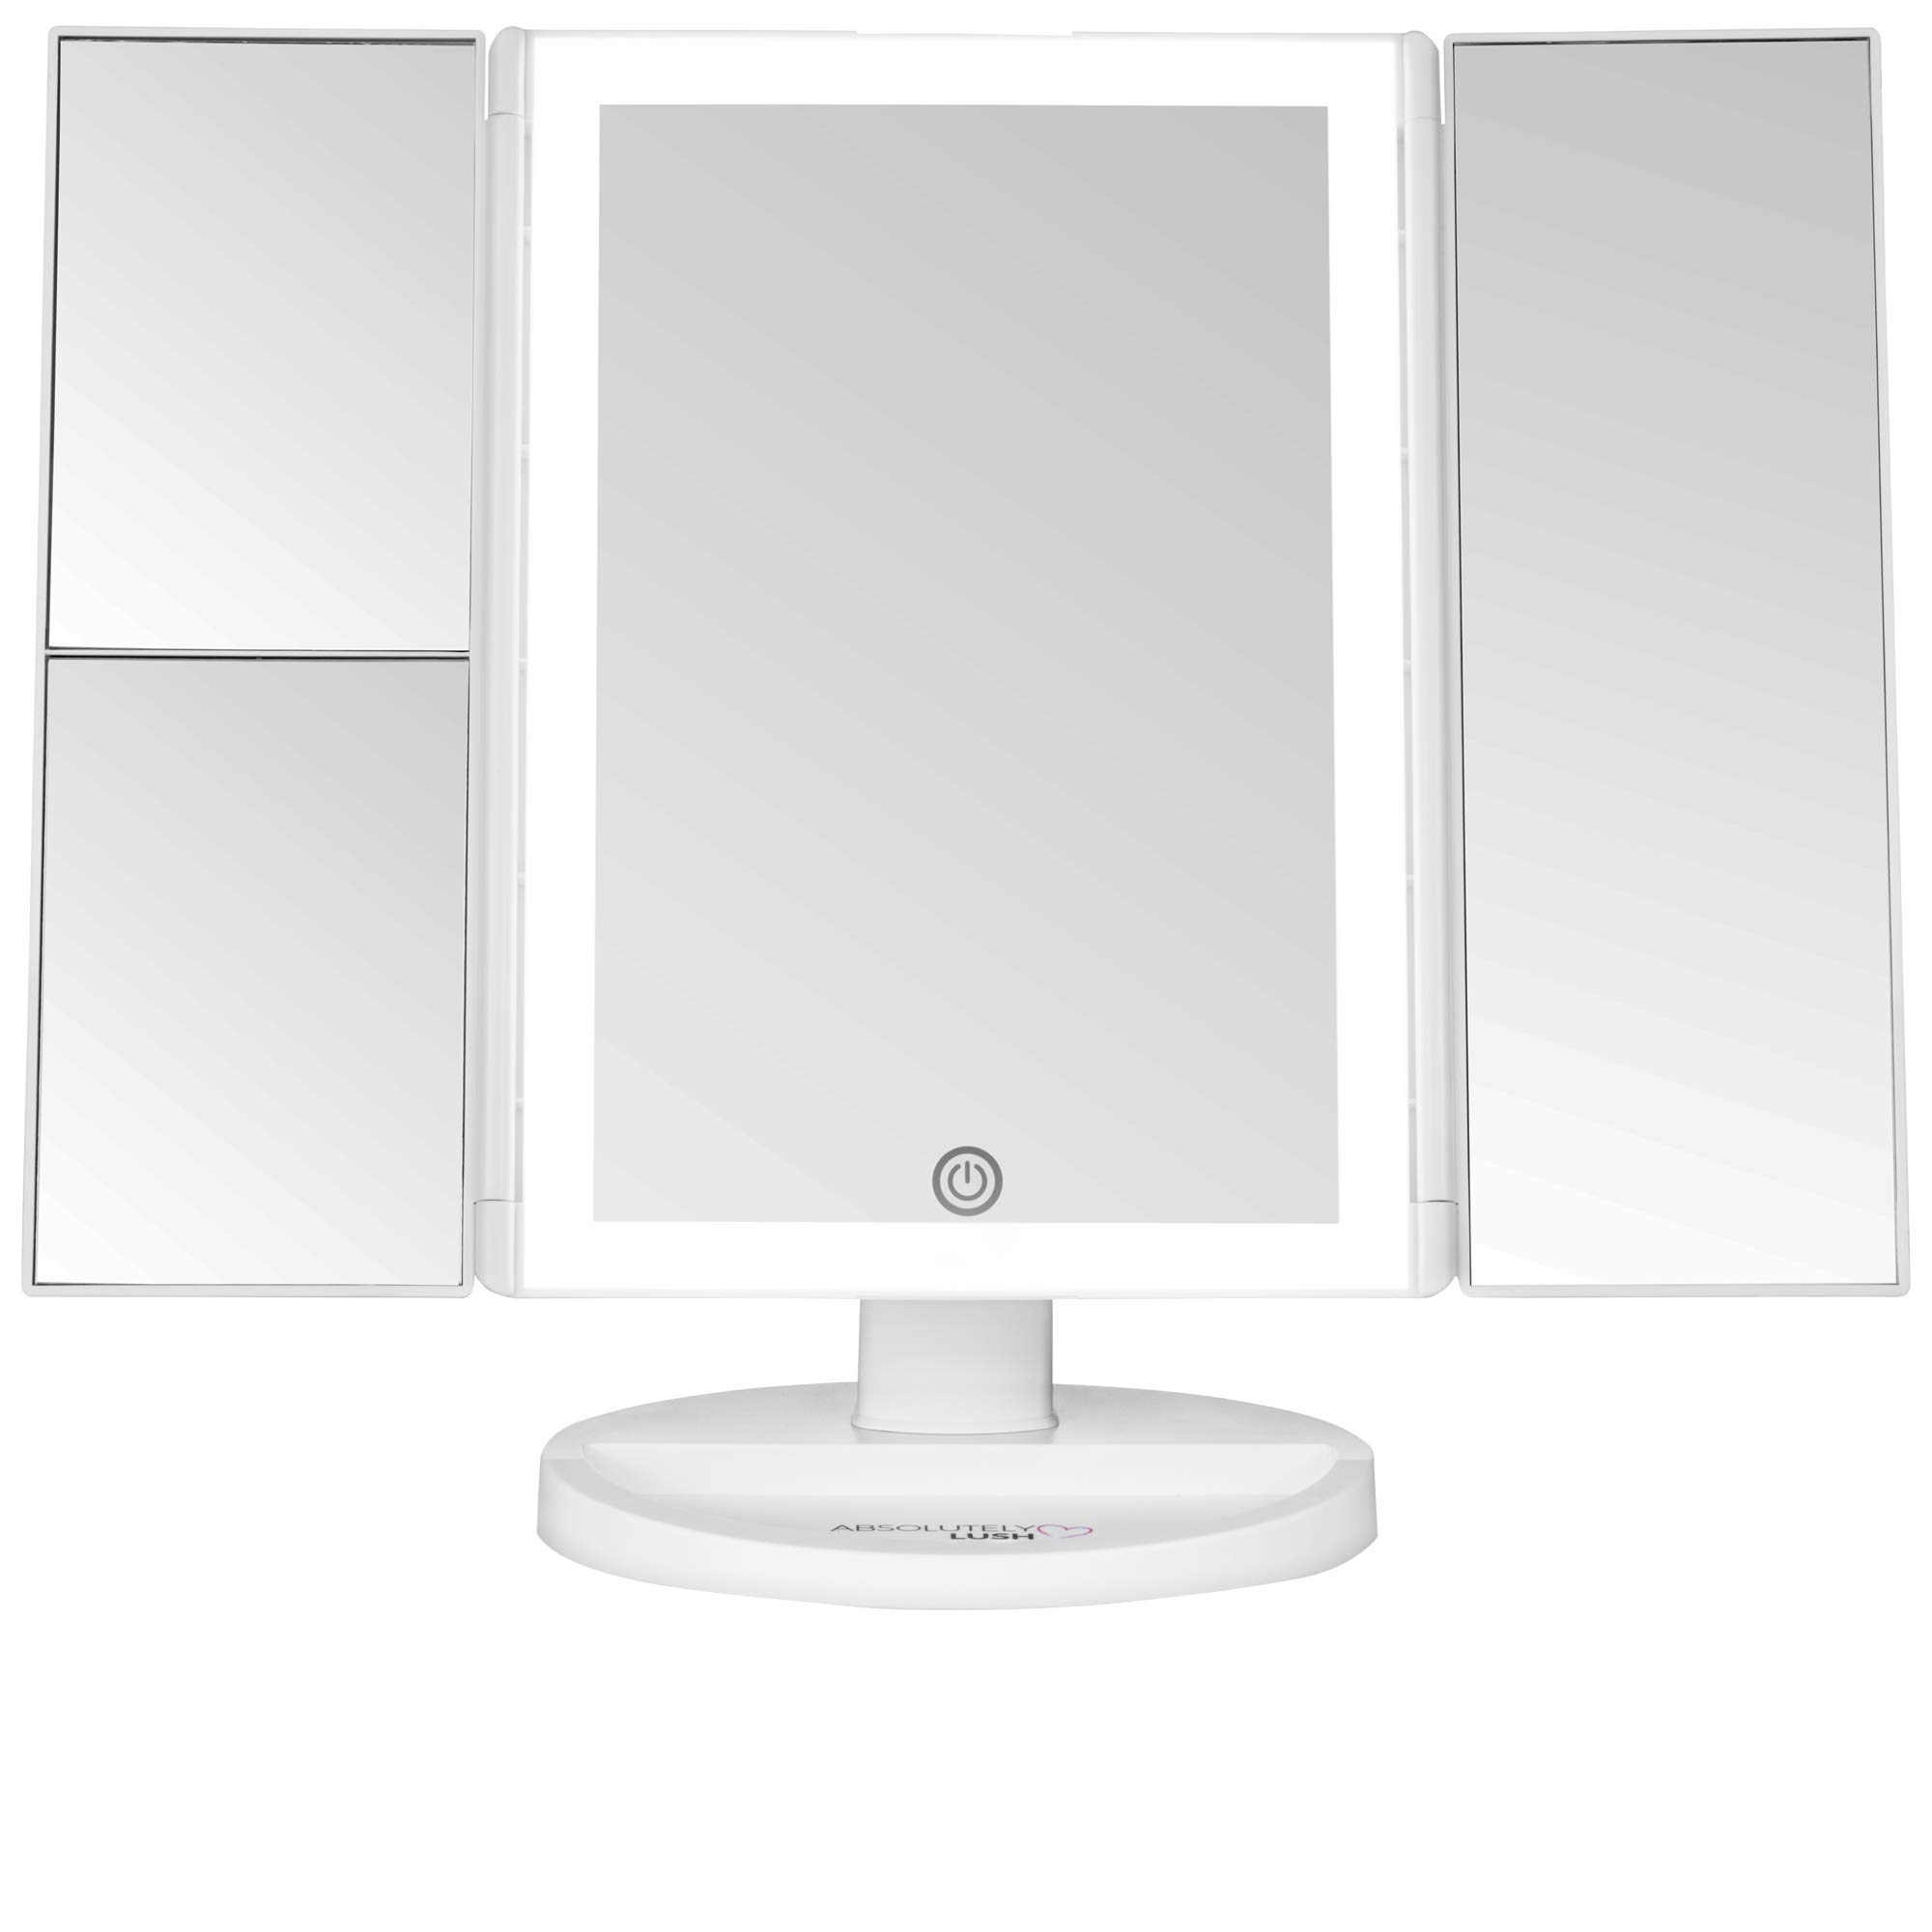 Lighted Makeup Mirror With Magnification | Vanity Mirror with Lights and Touch Screen Dimming - LED Trifold 1x 2x 3x Magnifying Mirrors - Small Portable Makeup Accessories | Make Up Mirror with Lights by Absolutely Luvly